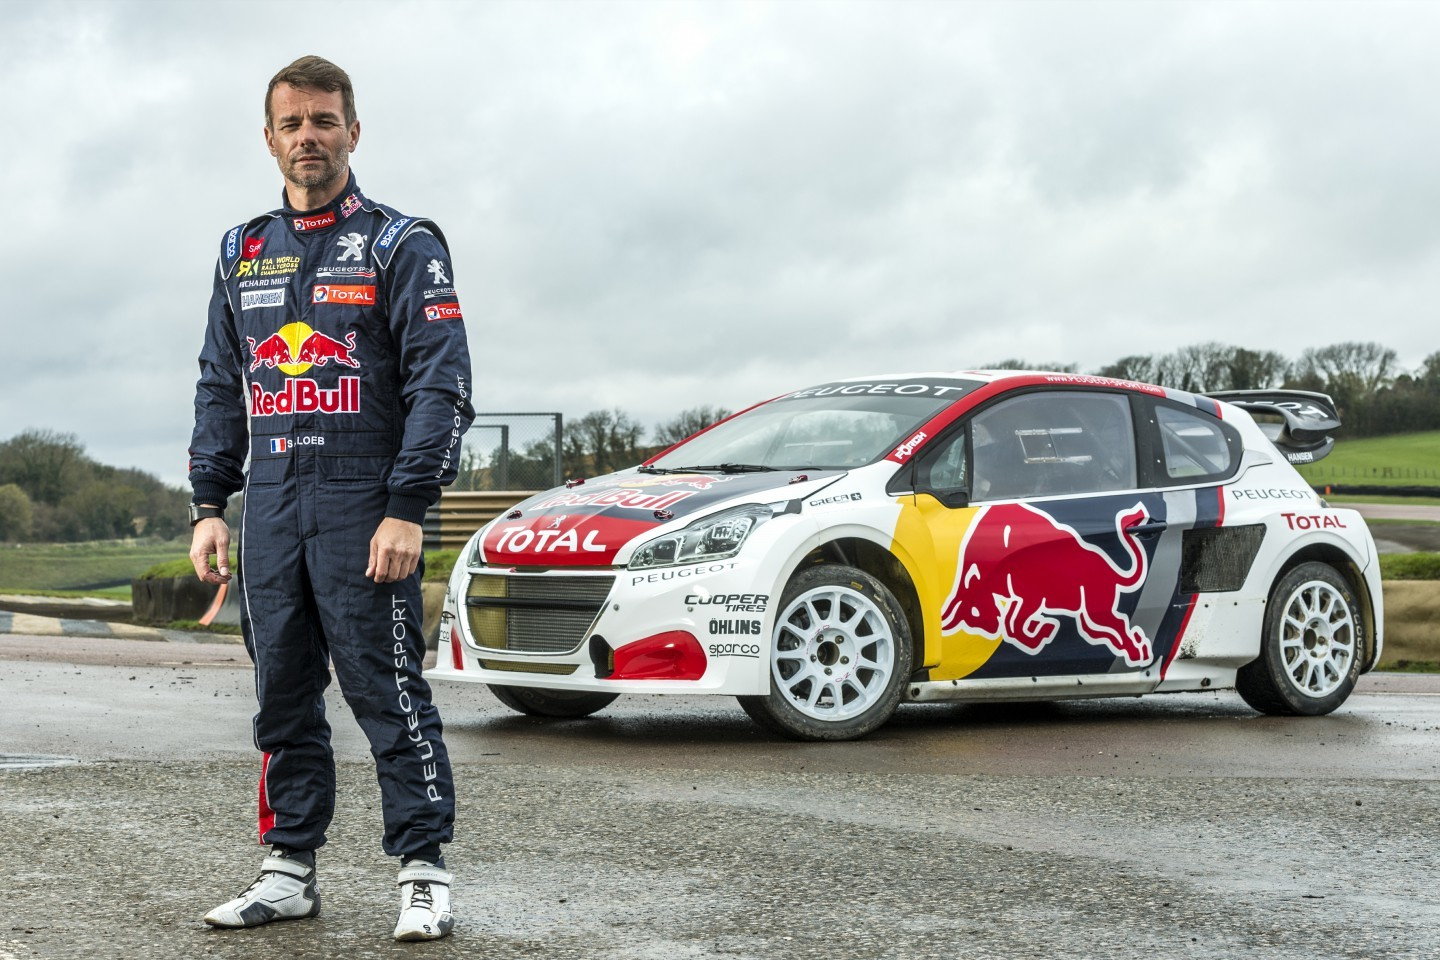 peugeot-208-wrx-world-rx-temporada-2017-10